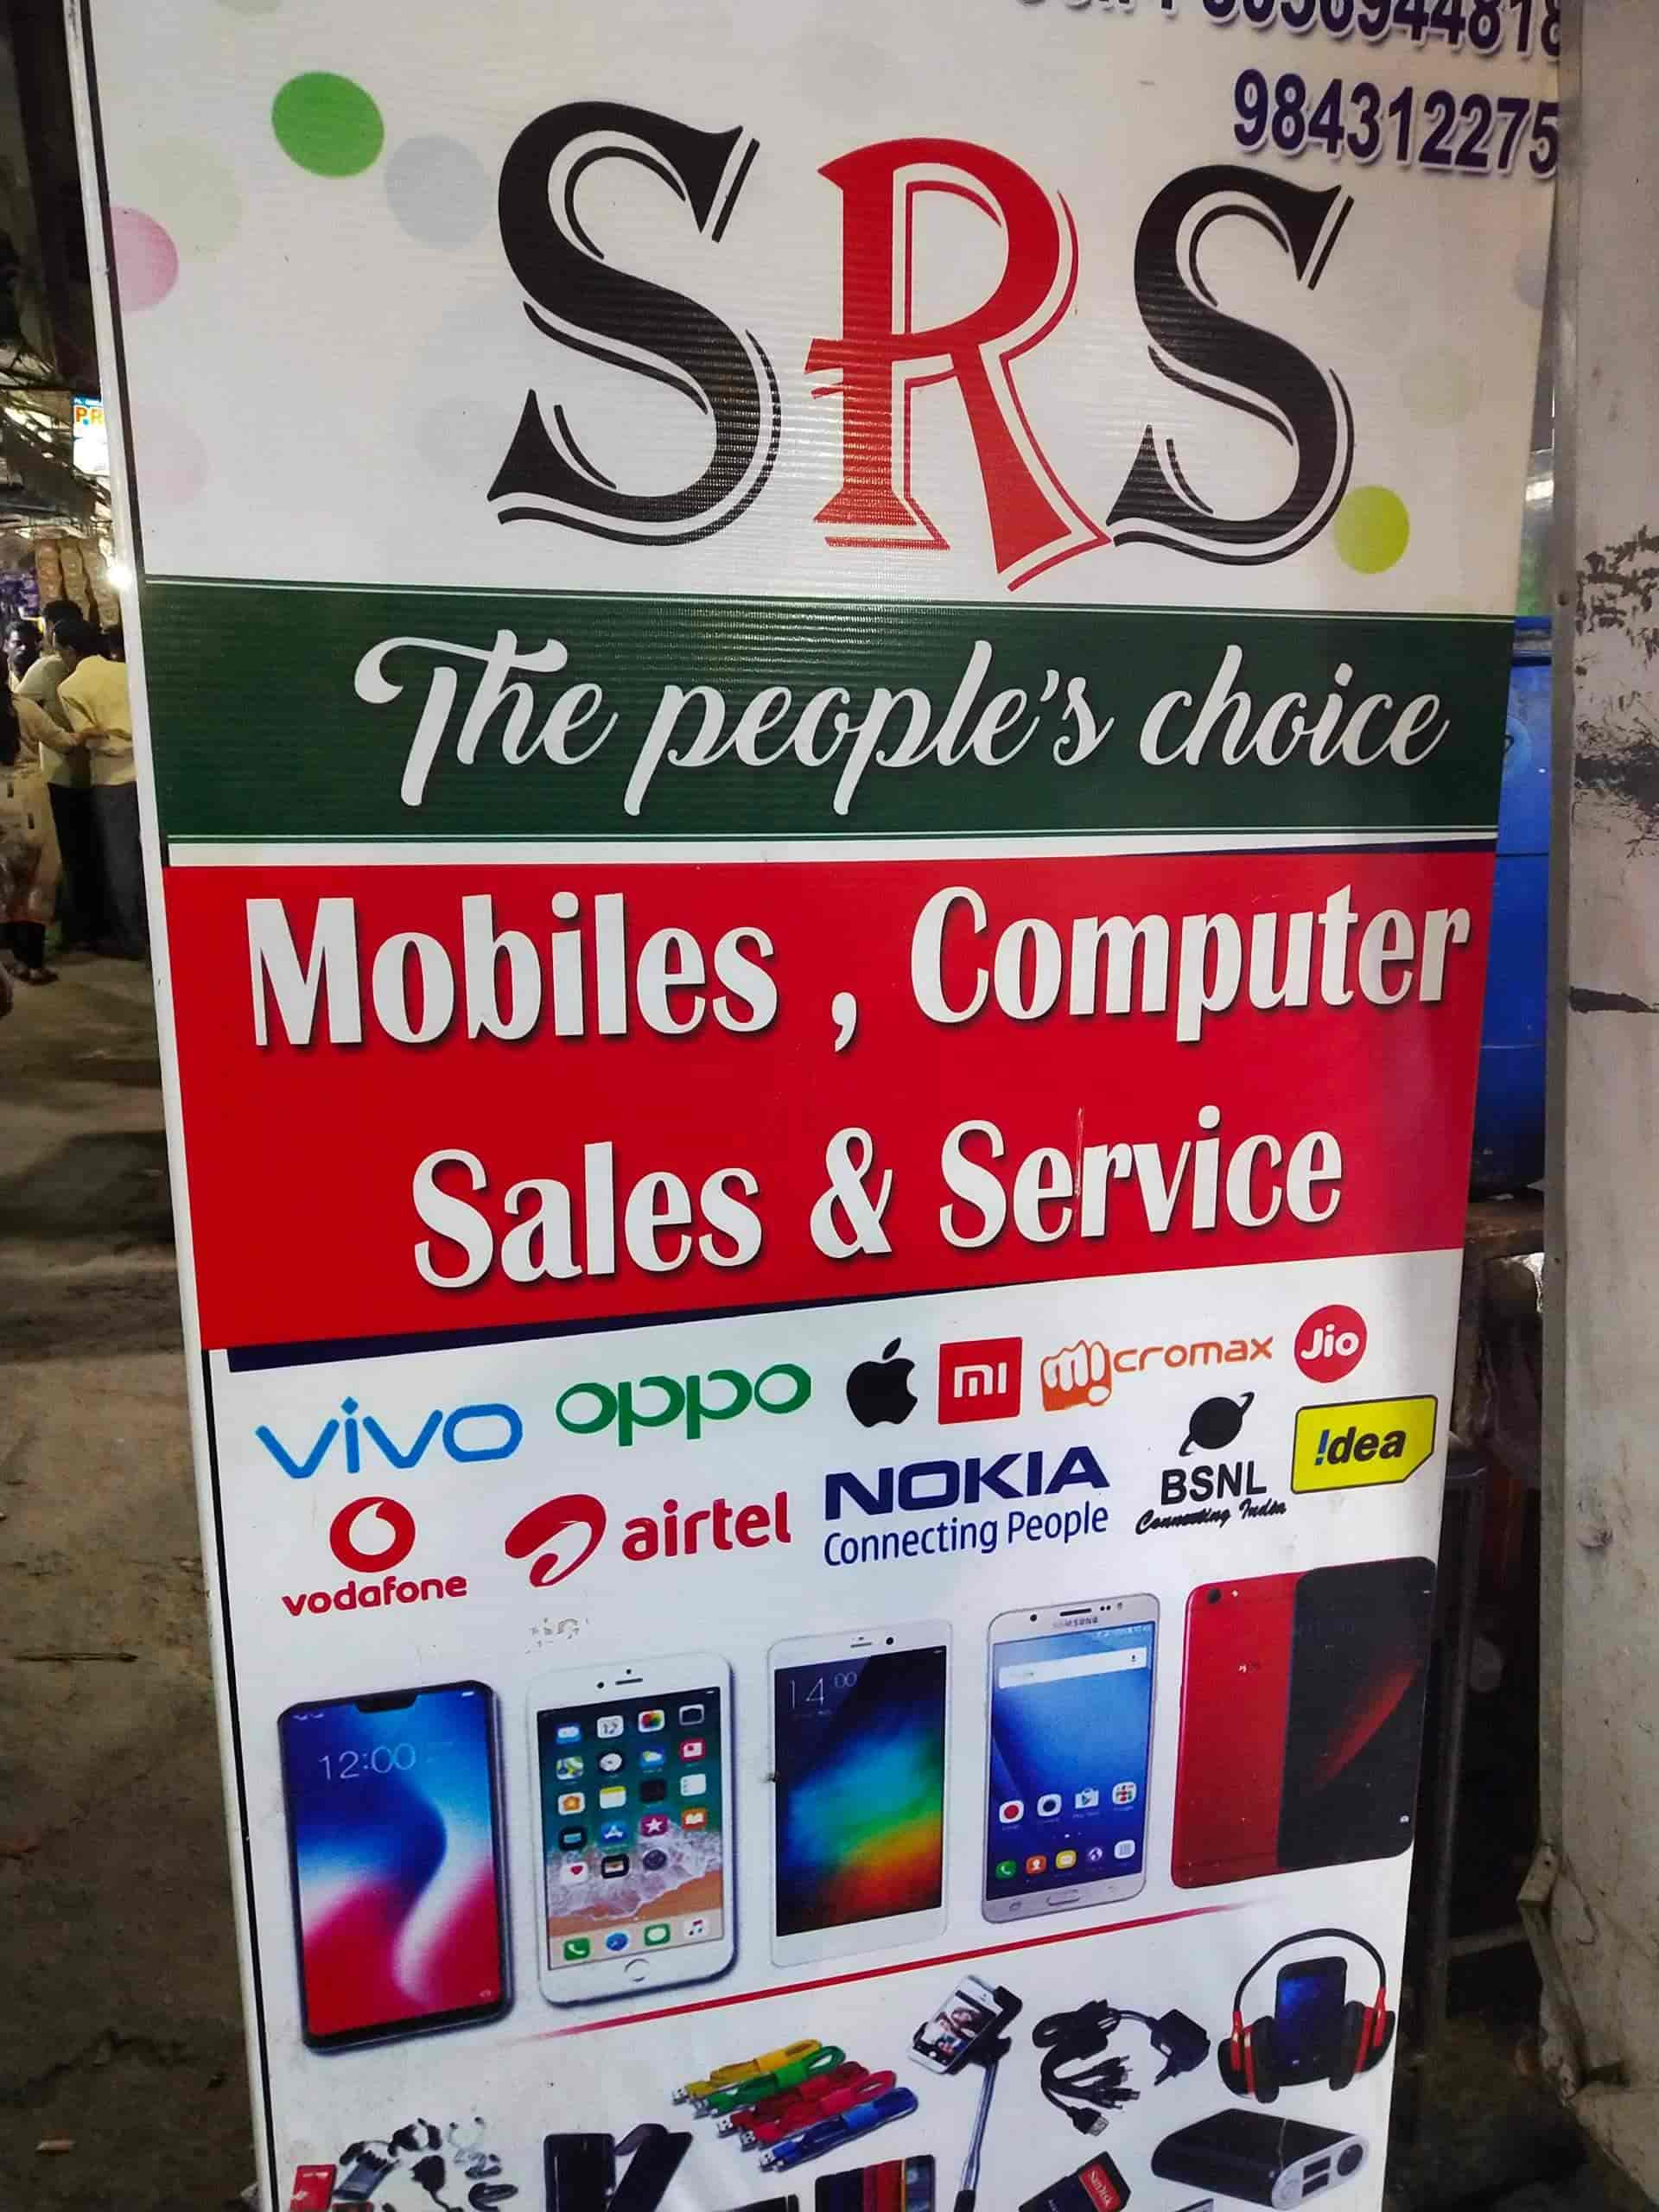 SRS Mobile Shop, Bazaar - Mobile Phone Repair & Services in